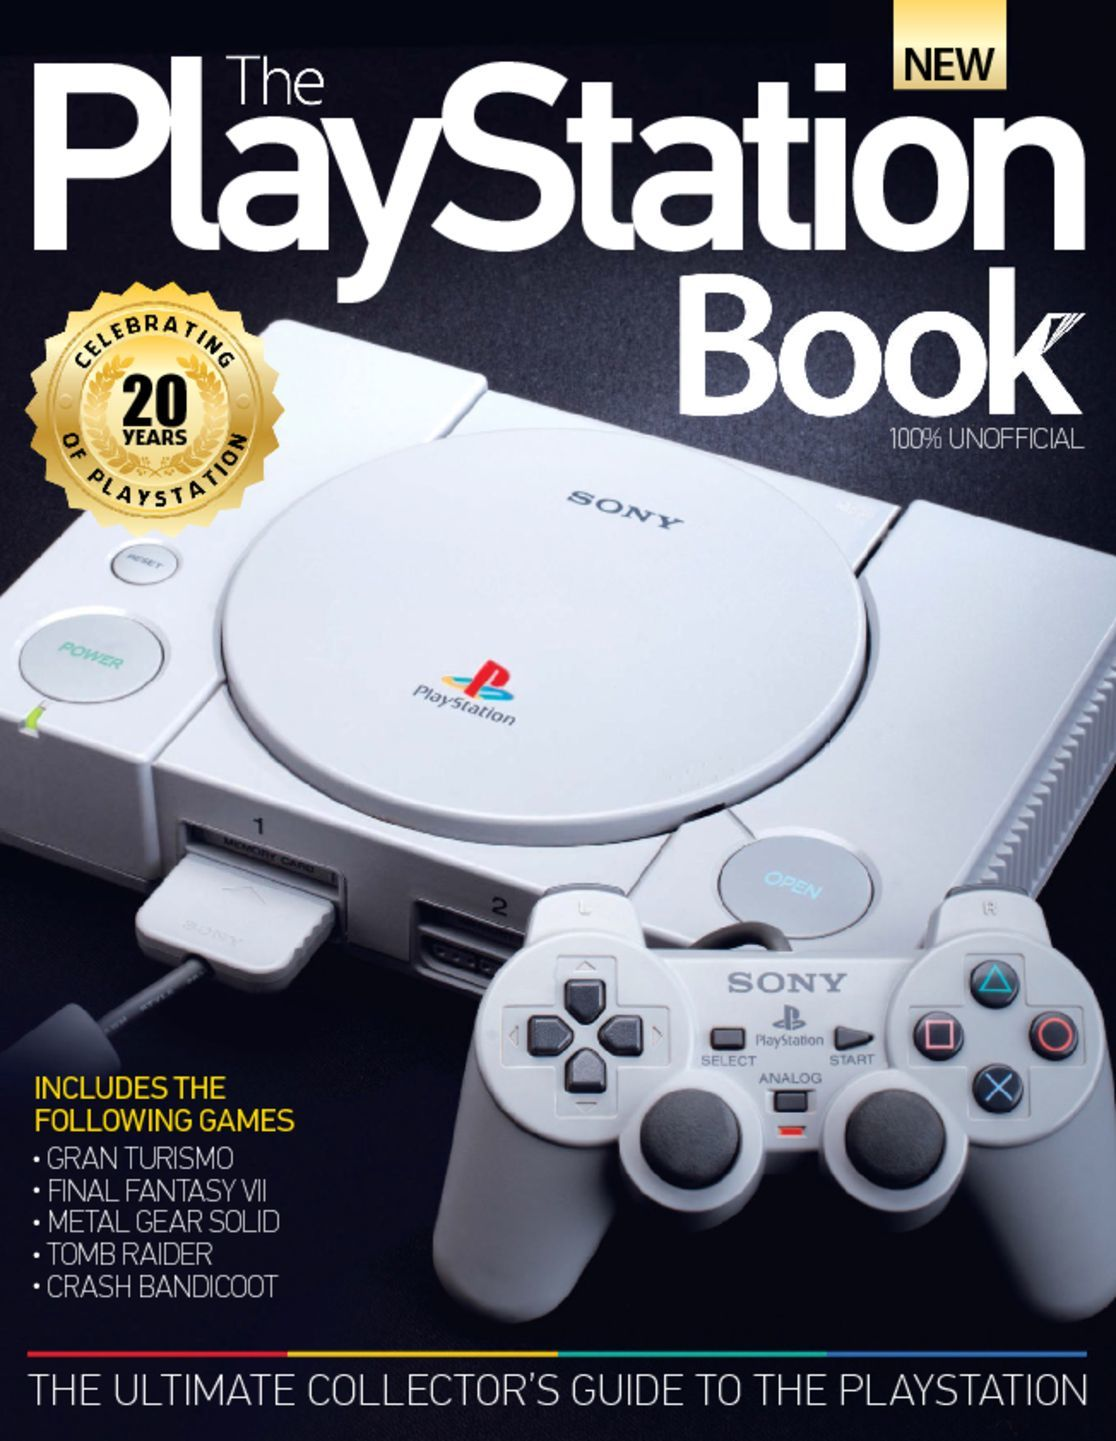 The PlayStation Book Digital